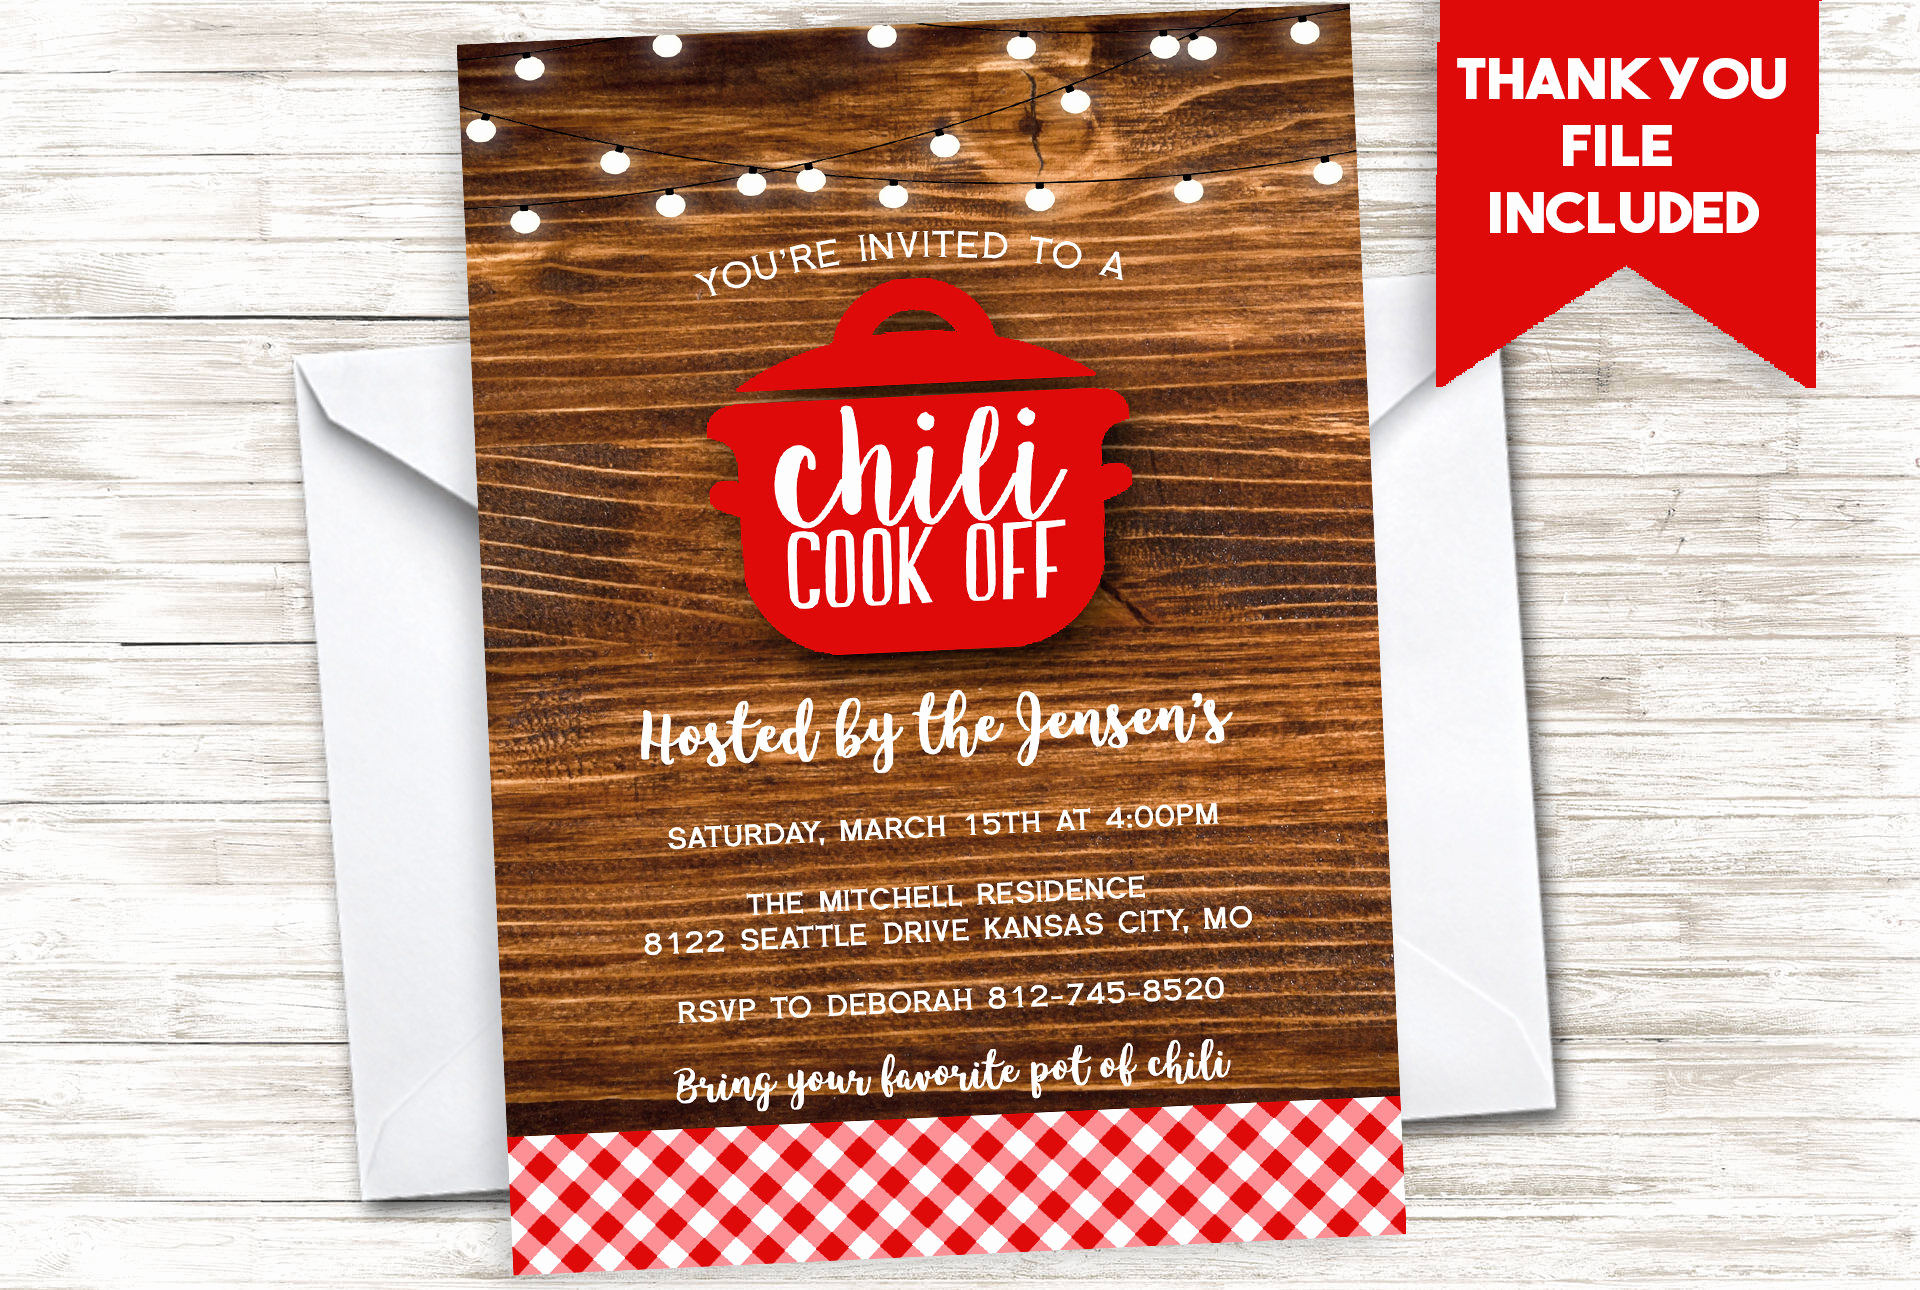 Chili Cook Off Invitation Template Unique Chili Cook F Invitation Announcement You are Invited